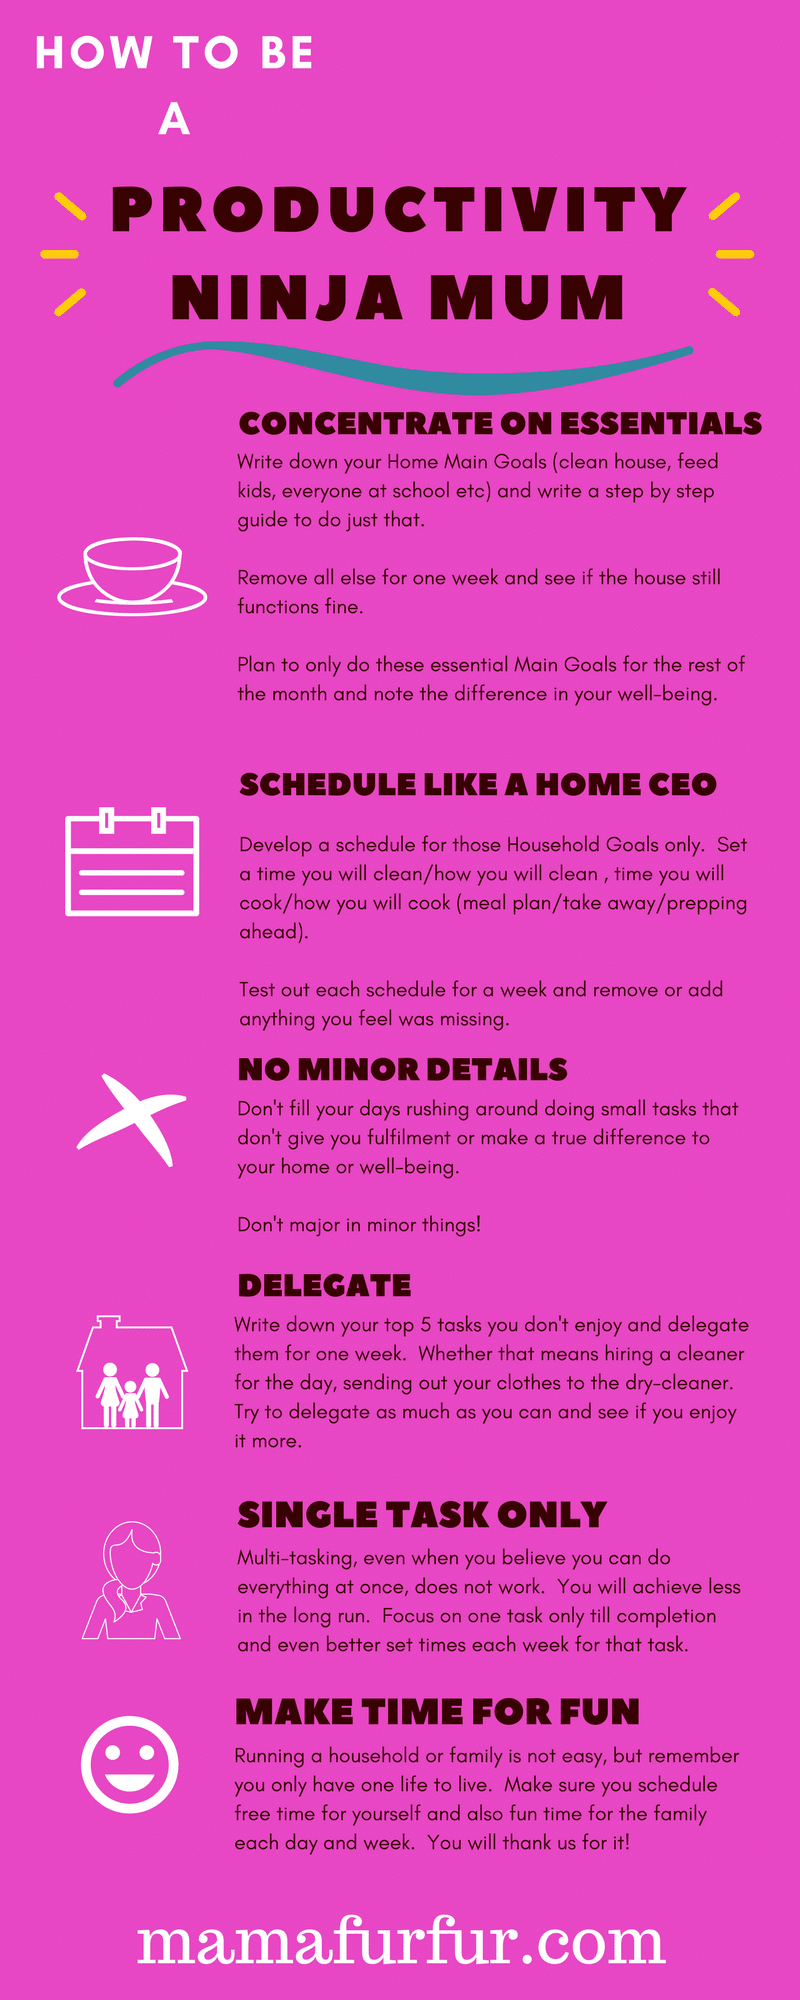 how to be a productivity ninja mum infographic #mealplanning #householdtips #householdhacks #mumhacks #momhacks